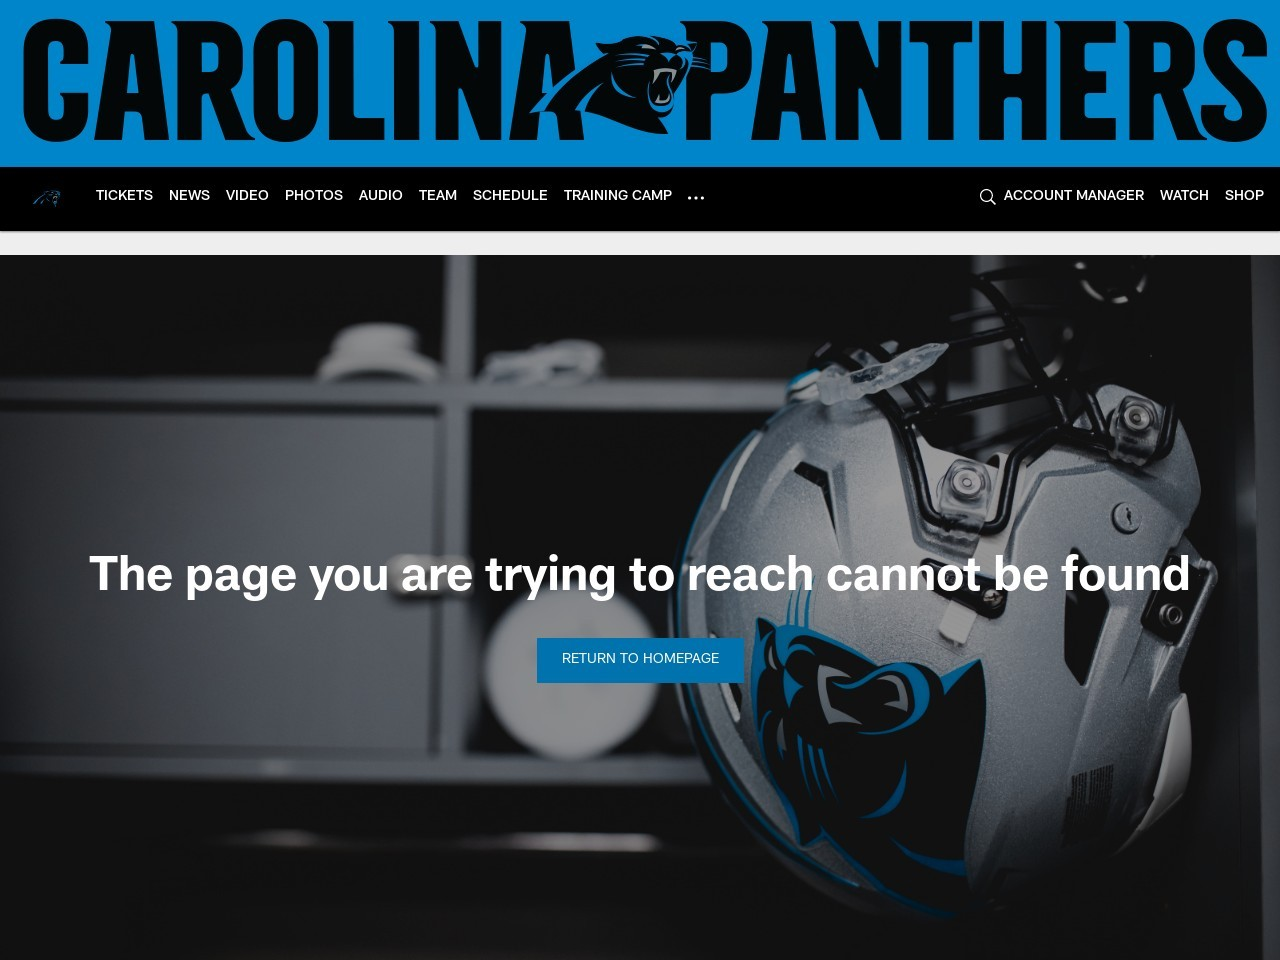 Five Things to Watch: Panthers at Rams